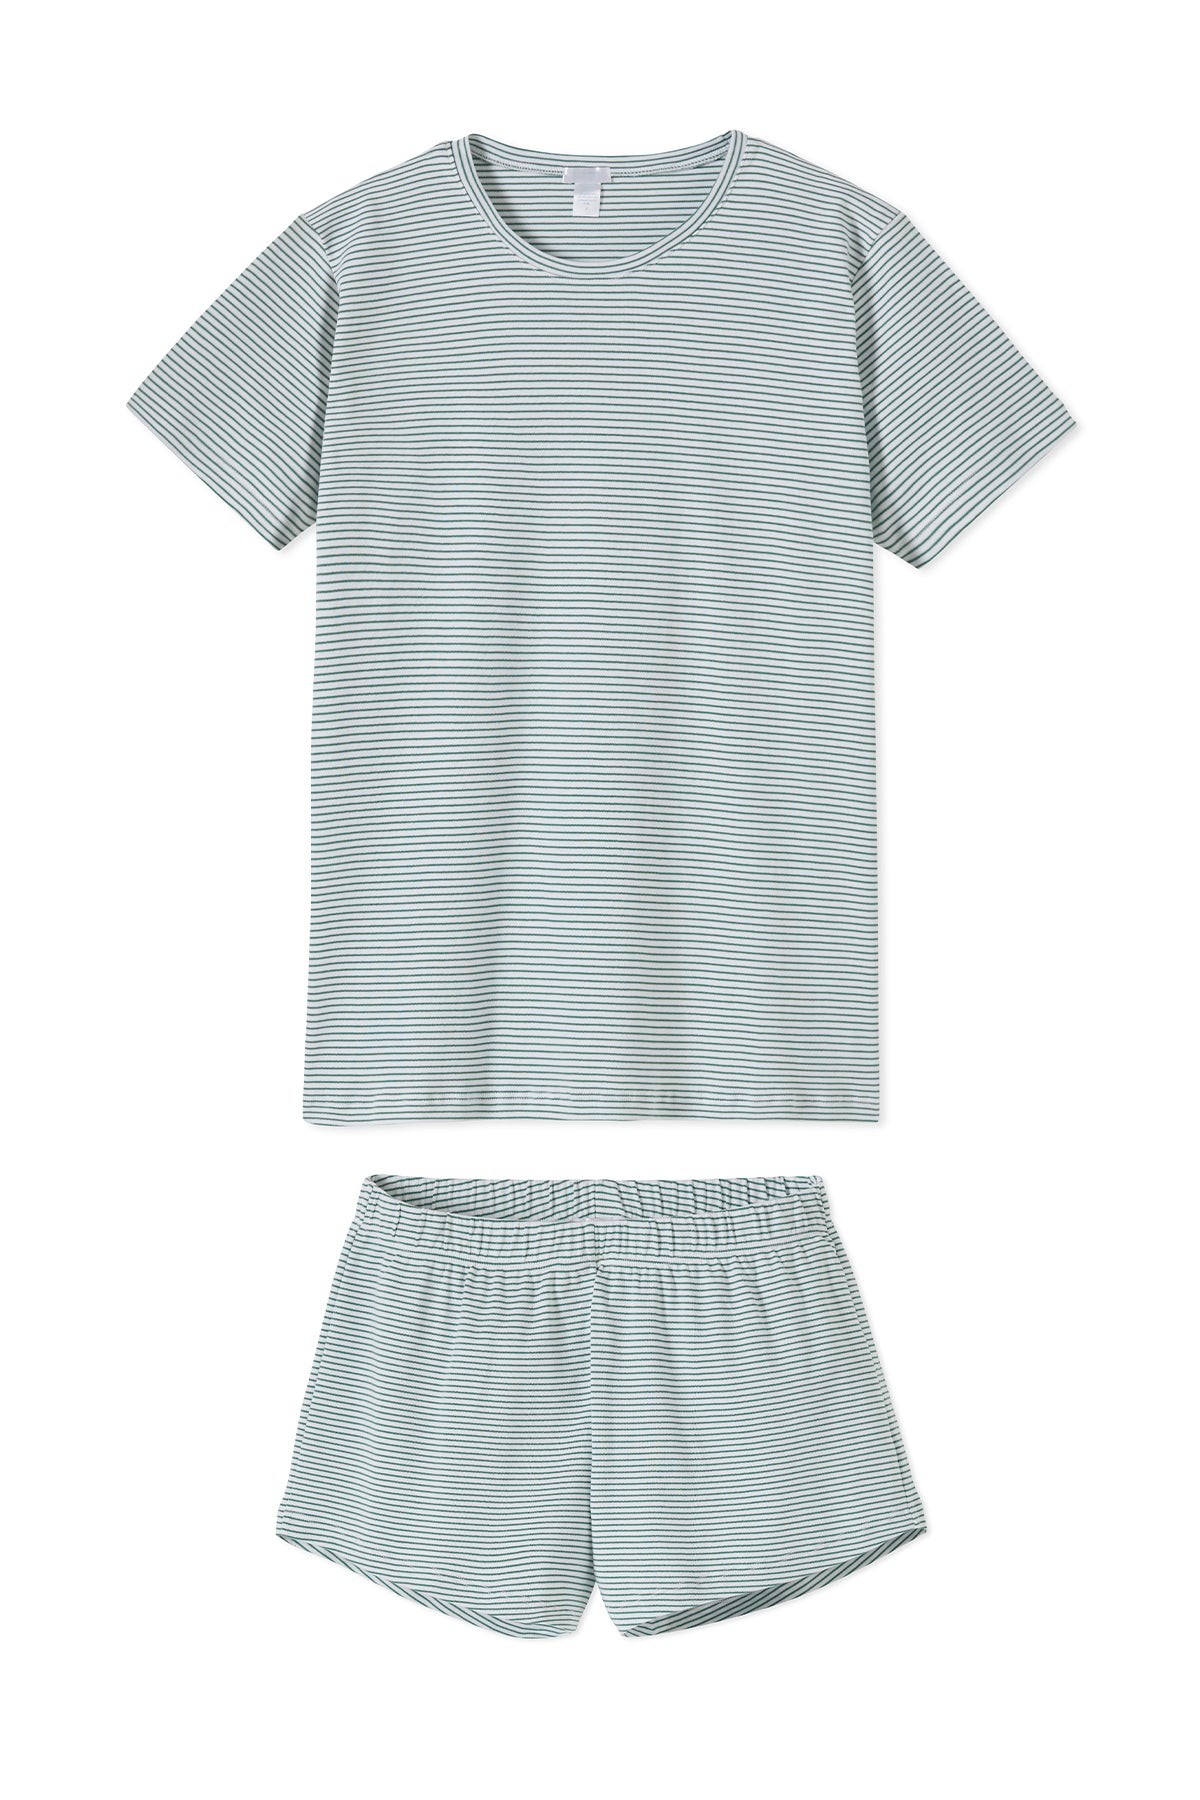 Pima Weekend Shorts Set in Classic Green